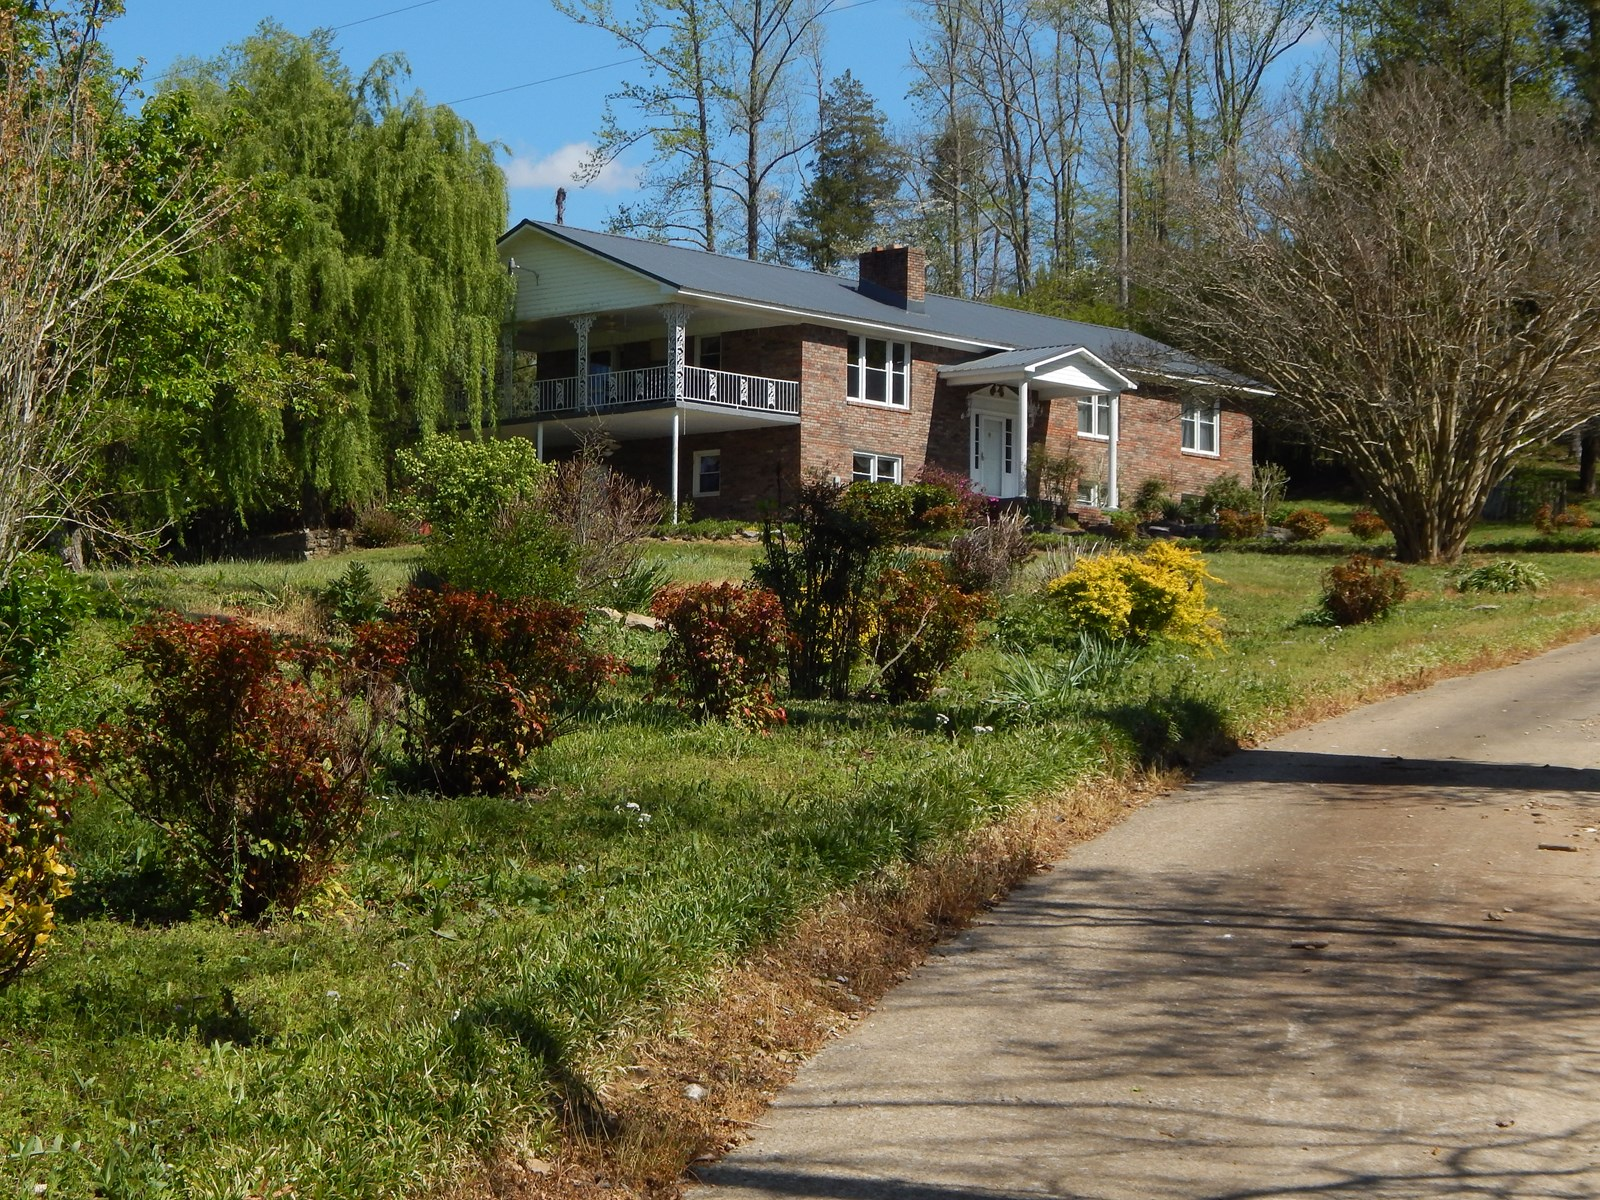 Tennessee Country Home on 4.5+/- Acres with a Creek & Pond!